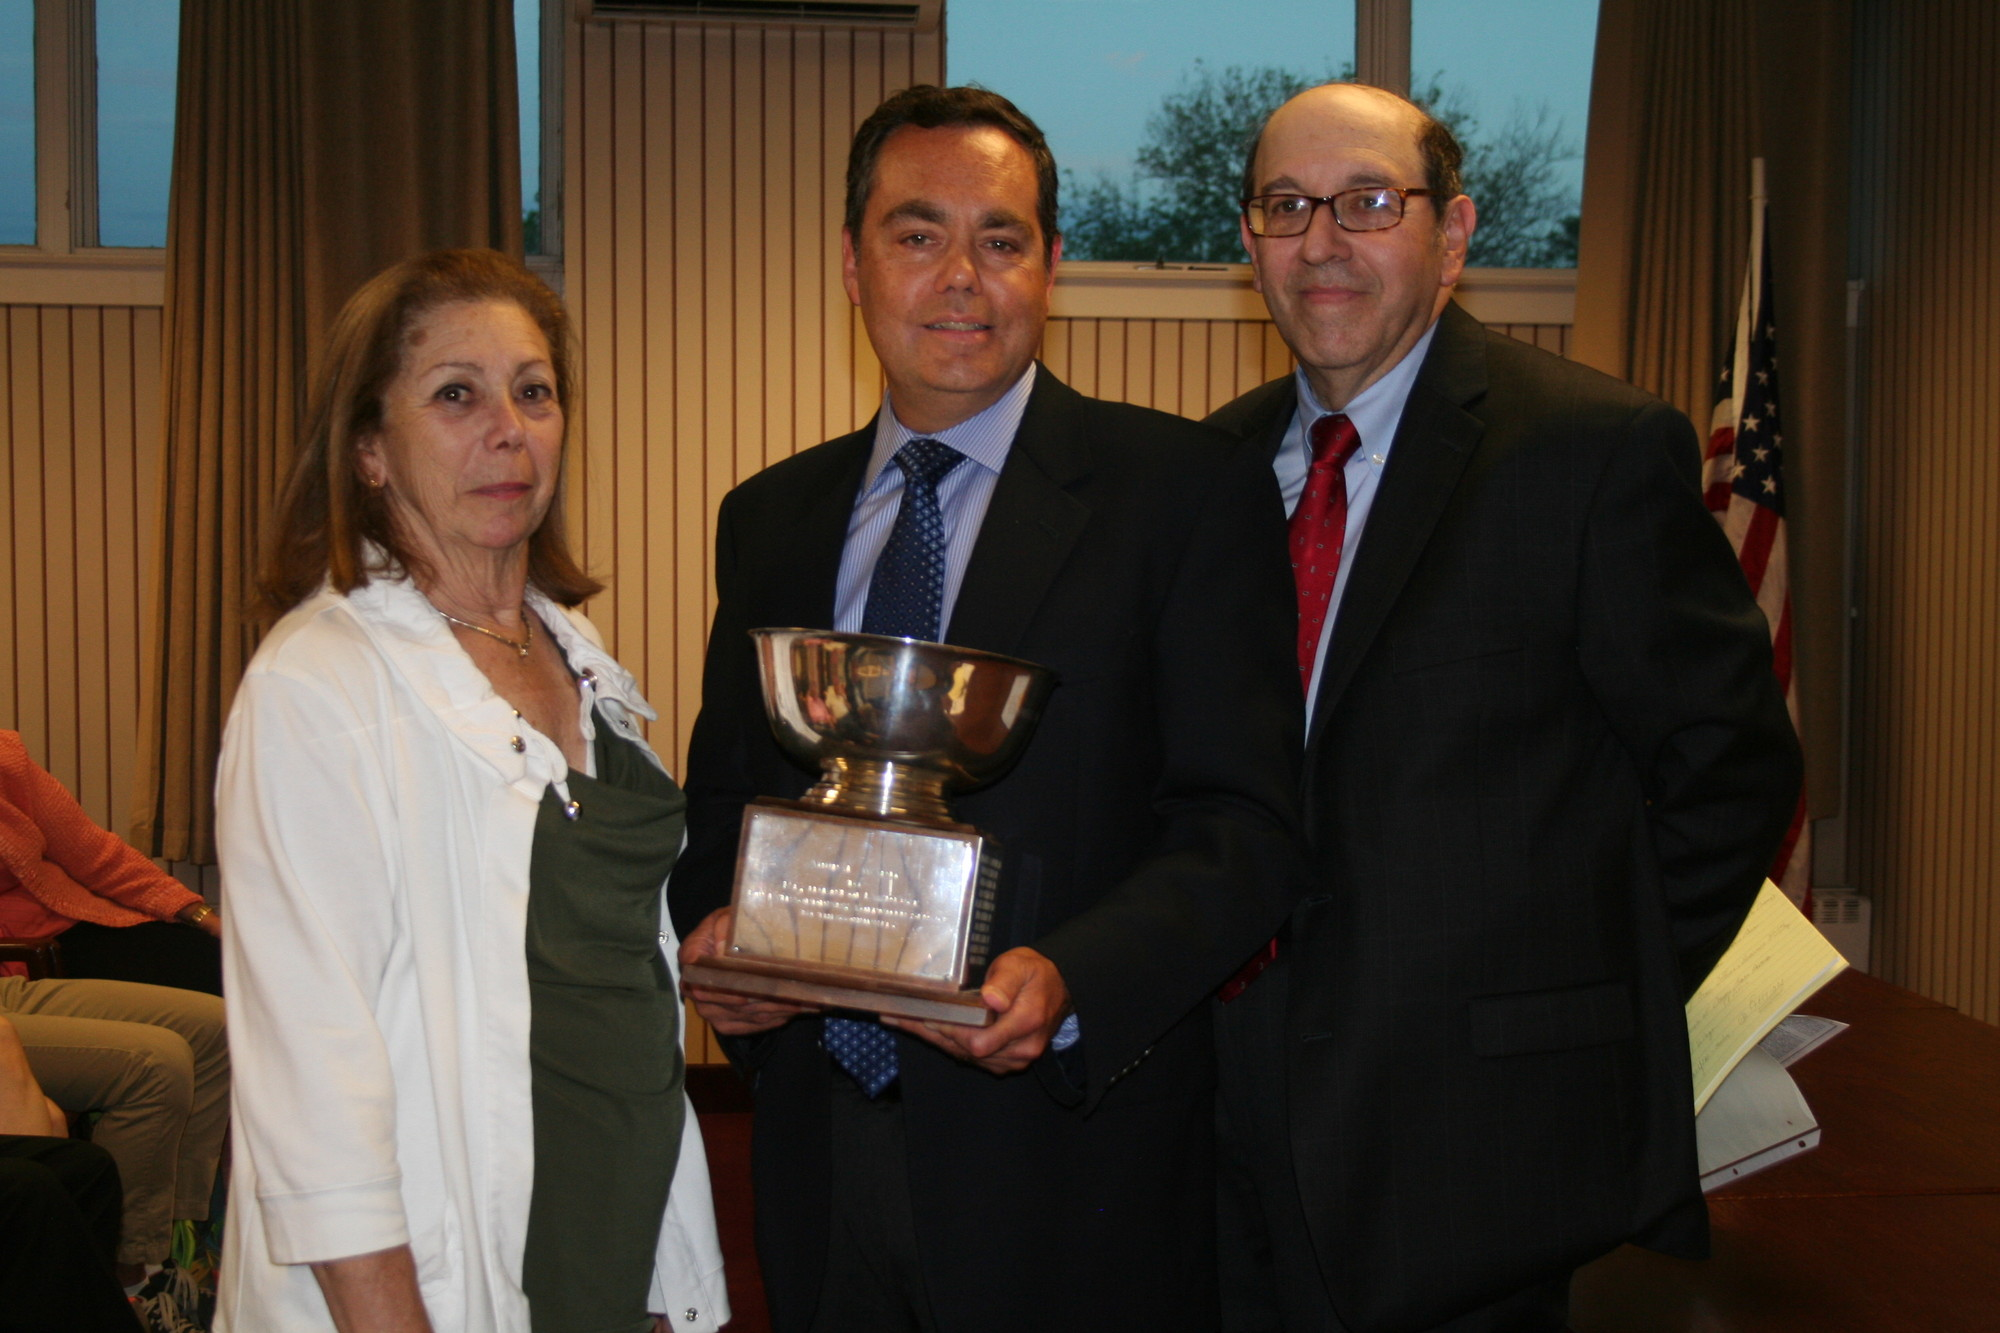 The Lawrence Association bestowed its Crowell Baker Award for distinguished public service to Edward Gottlieb, center. From left were past recipient Jacqueline Handel and Ron Goldman, the group's president.